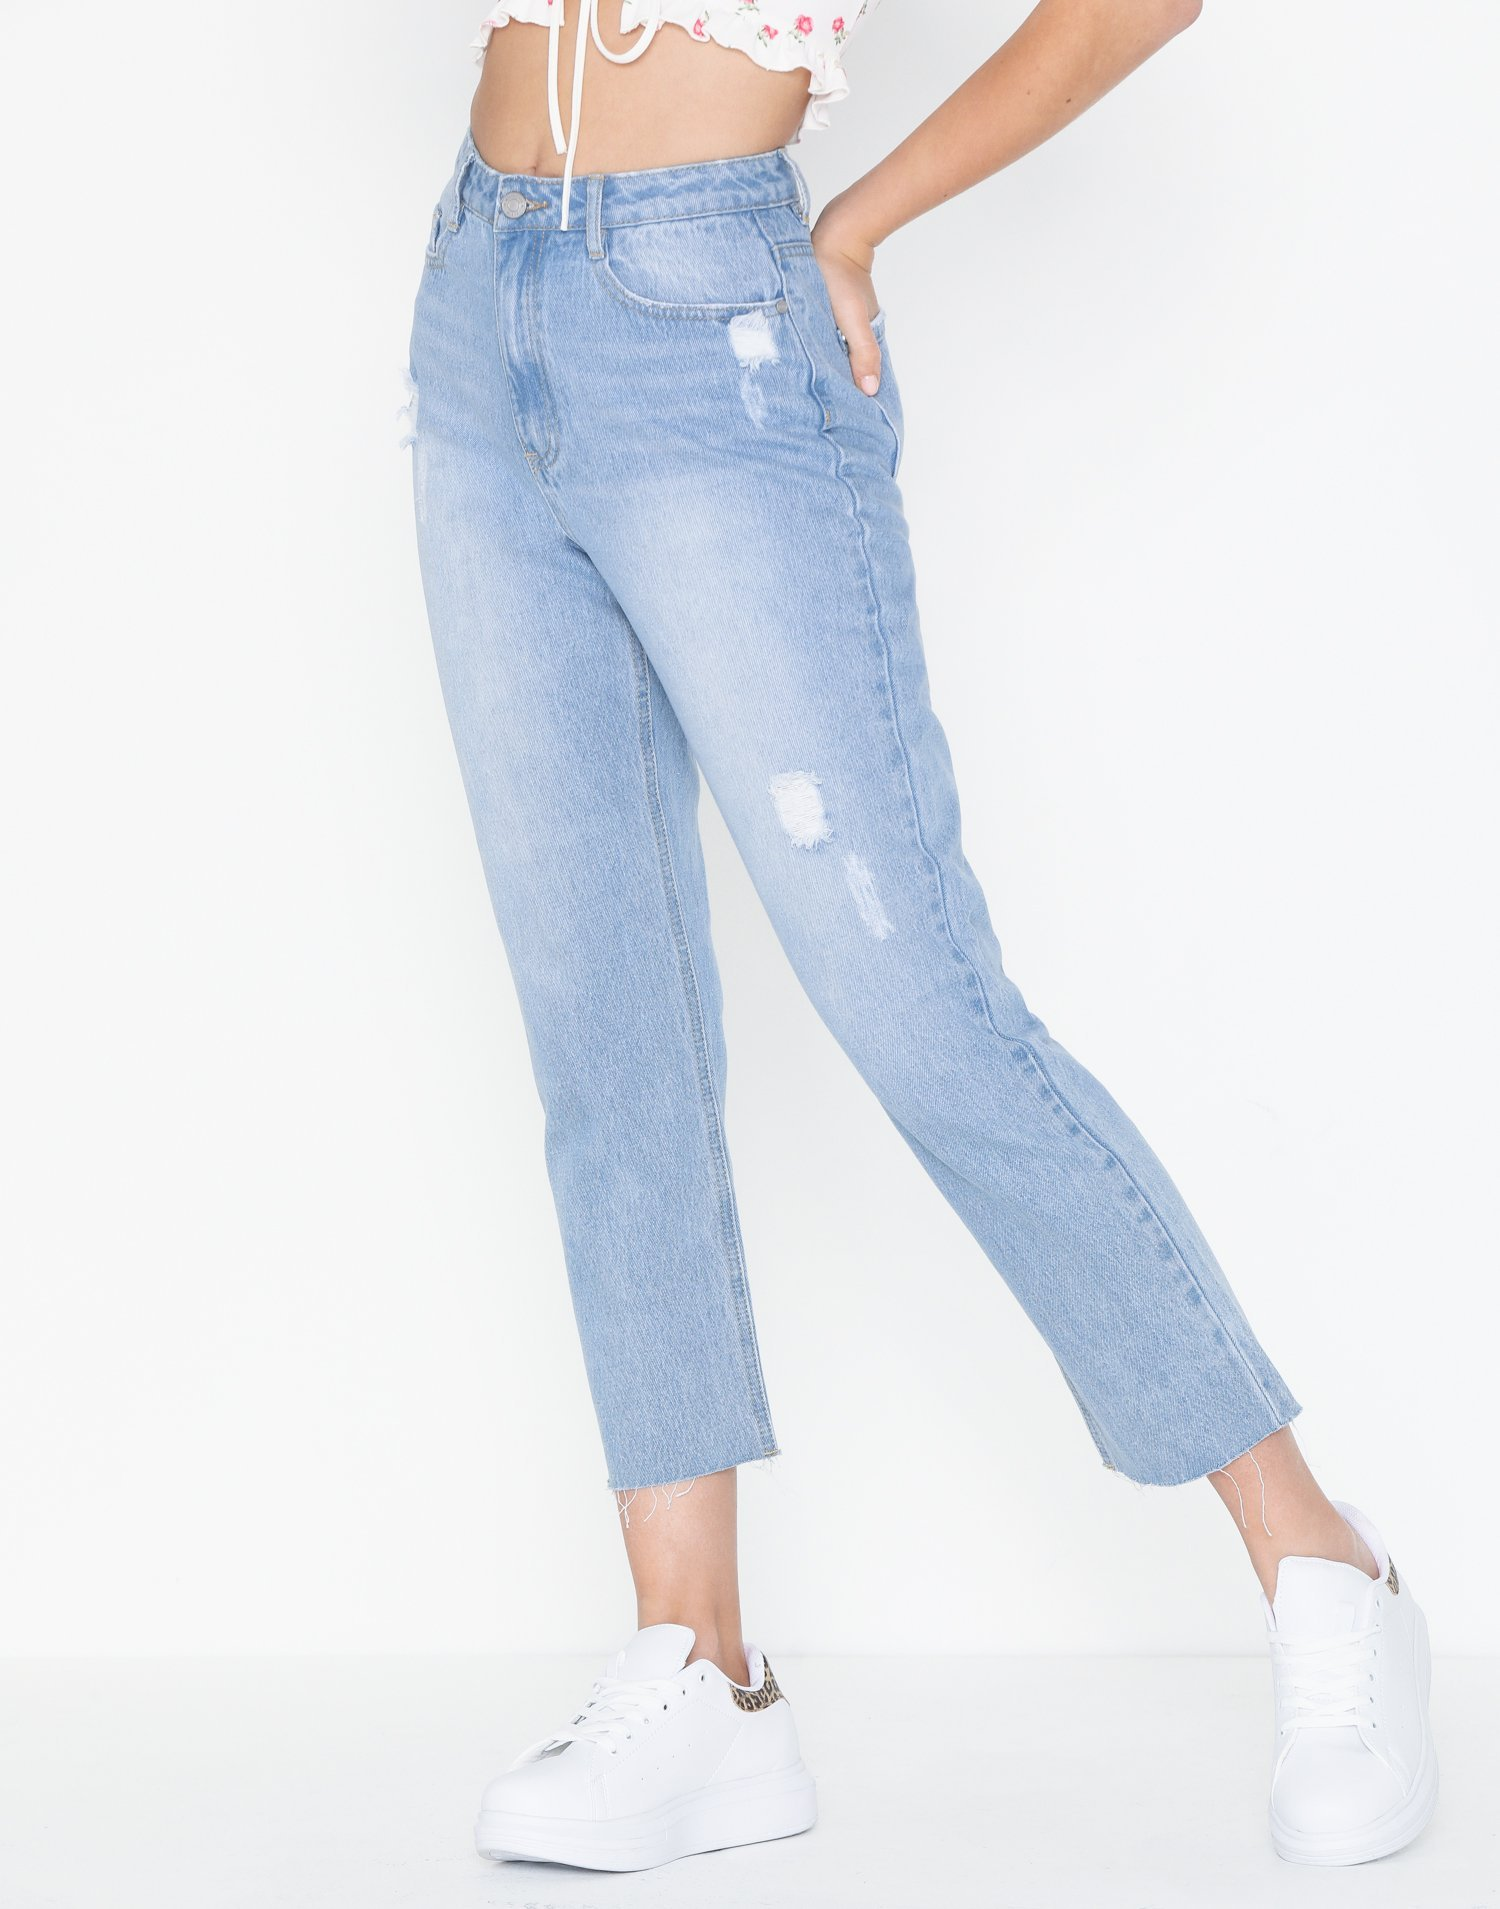 Wrath Cut Hem Distressed Jeans by Missguided